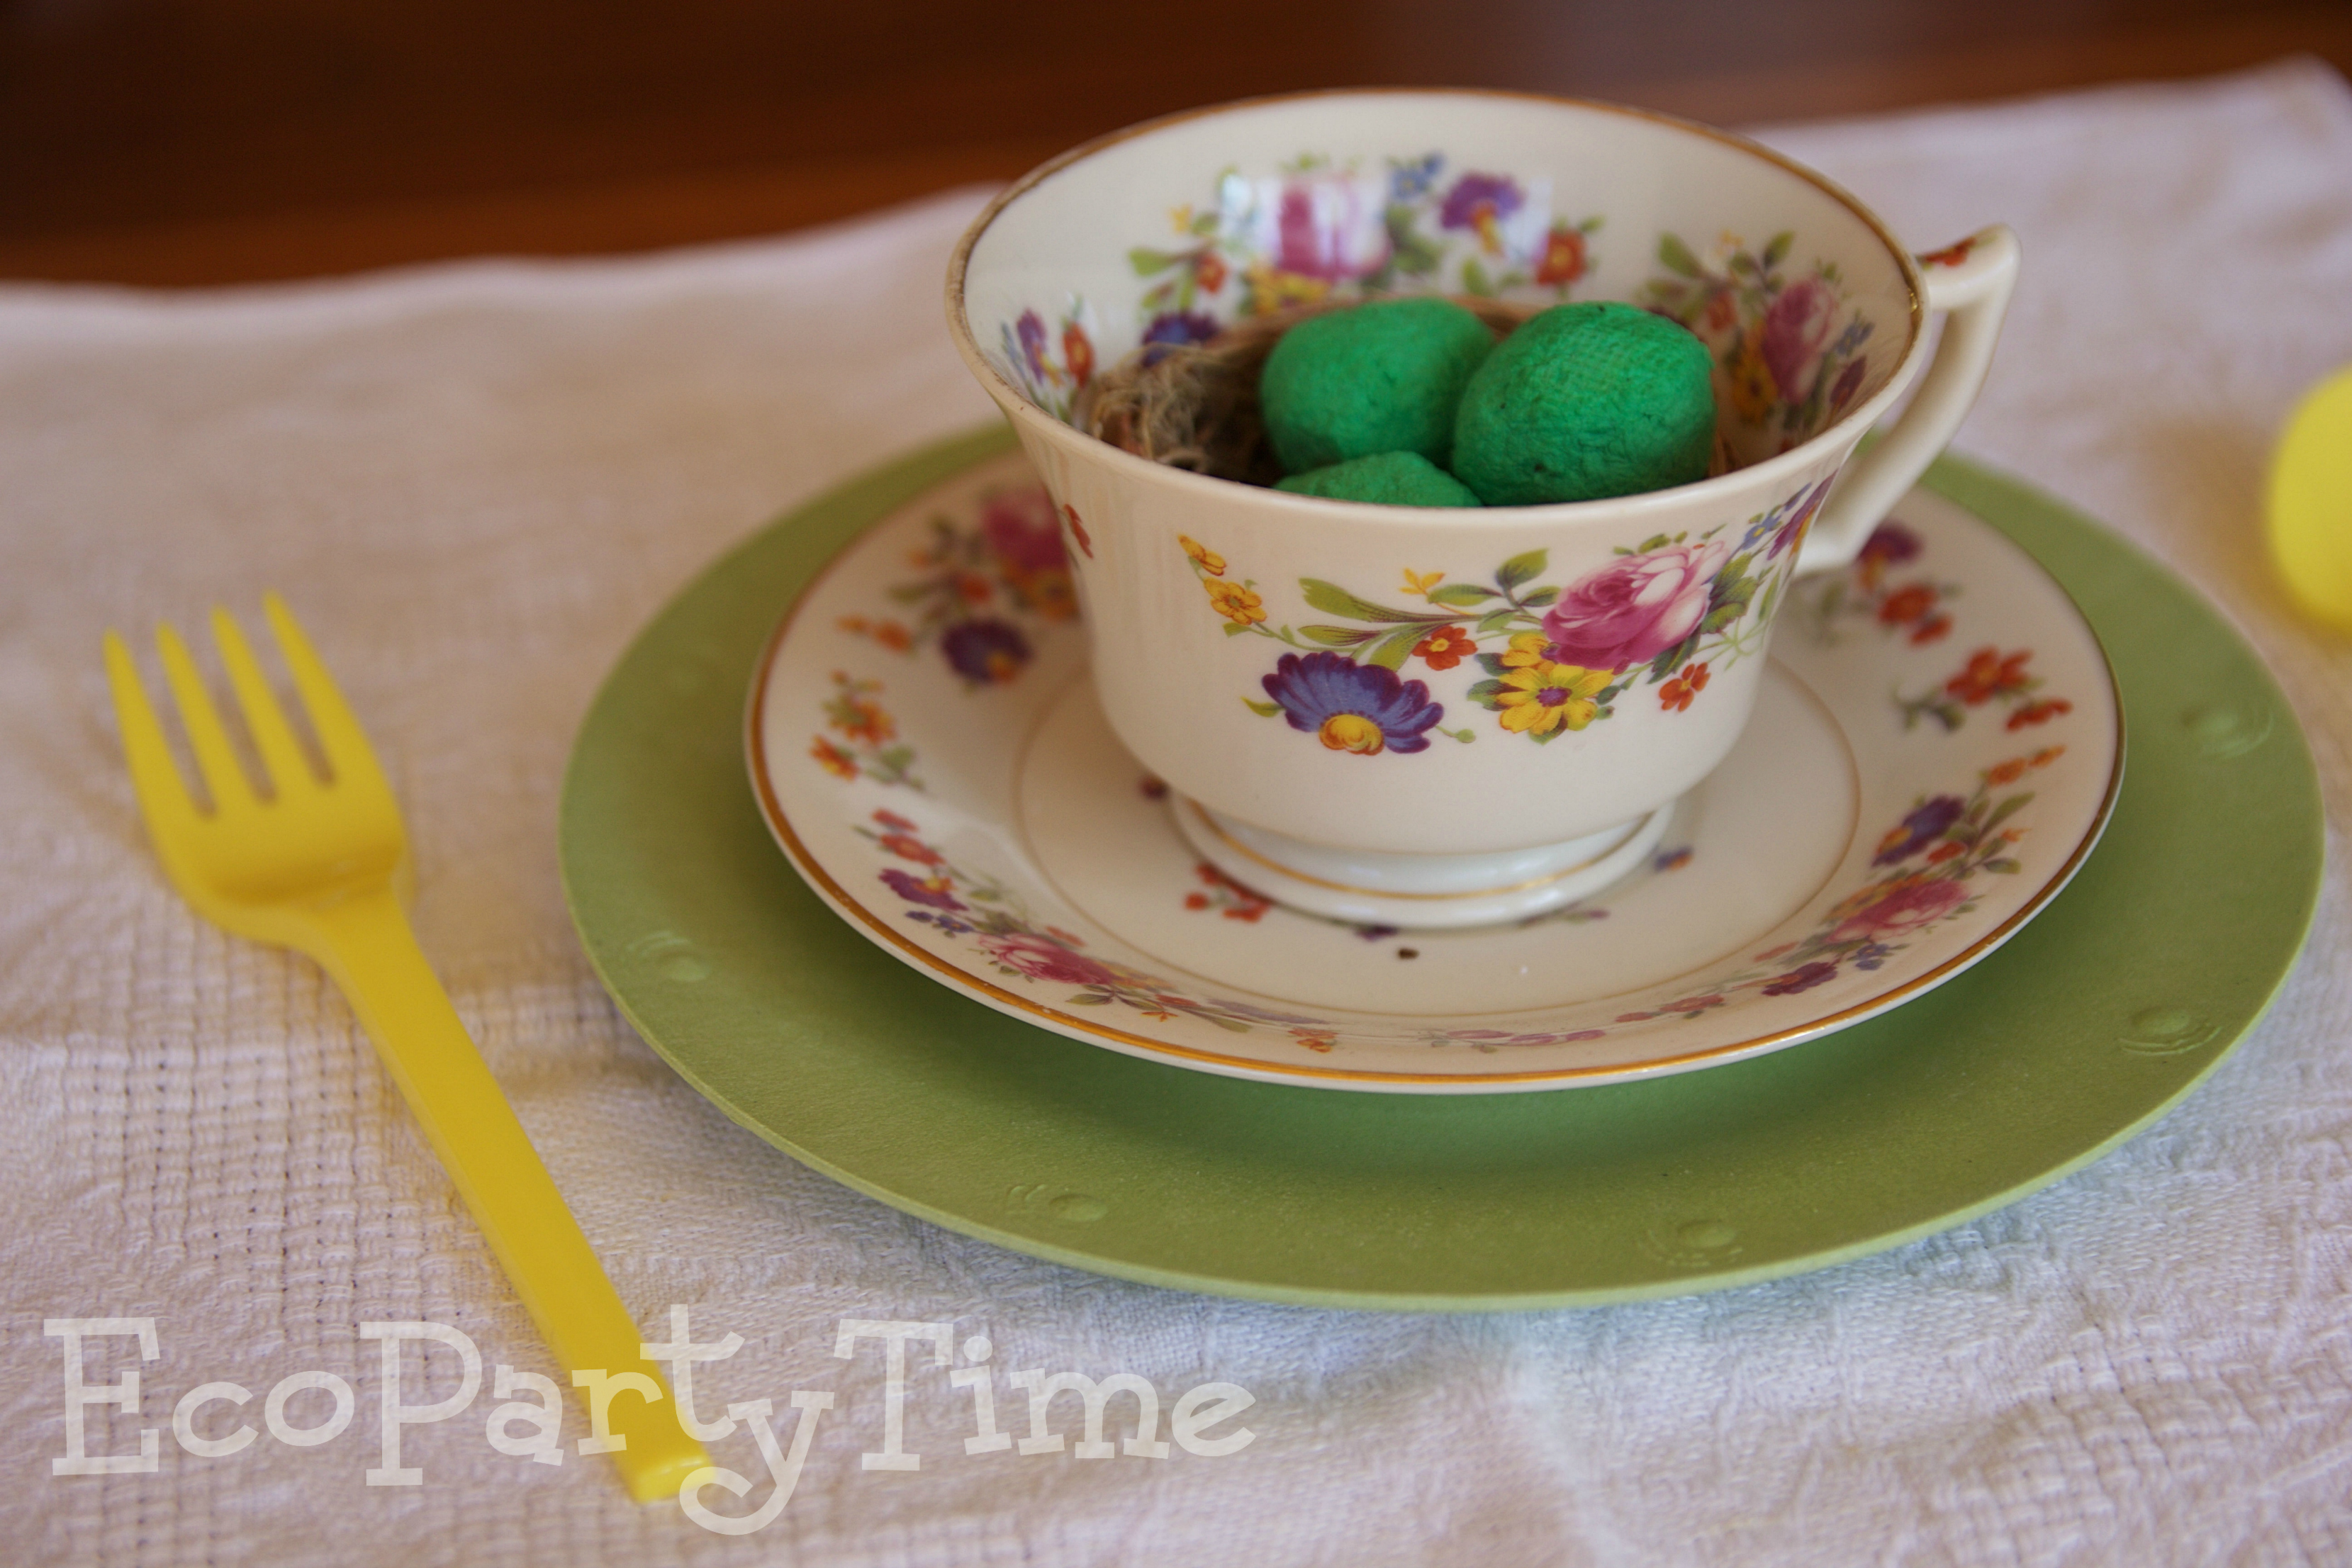 Ecopartytime: Eco-Friendly Easter Table-Settings